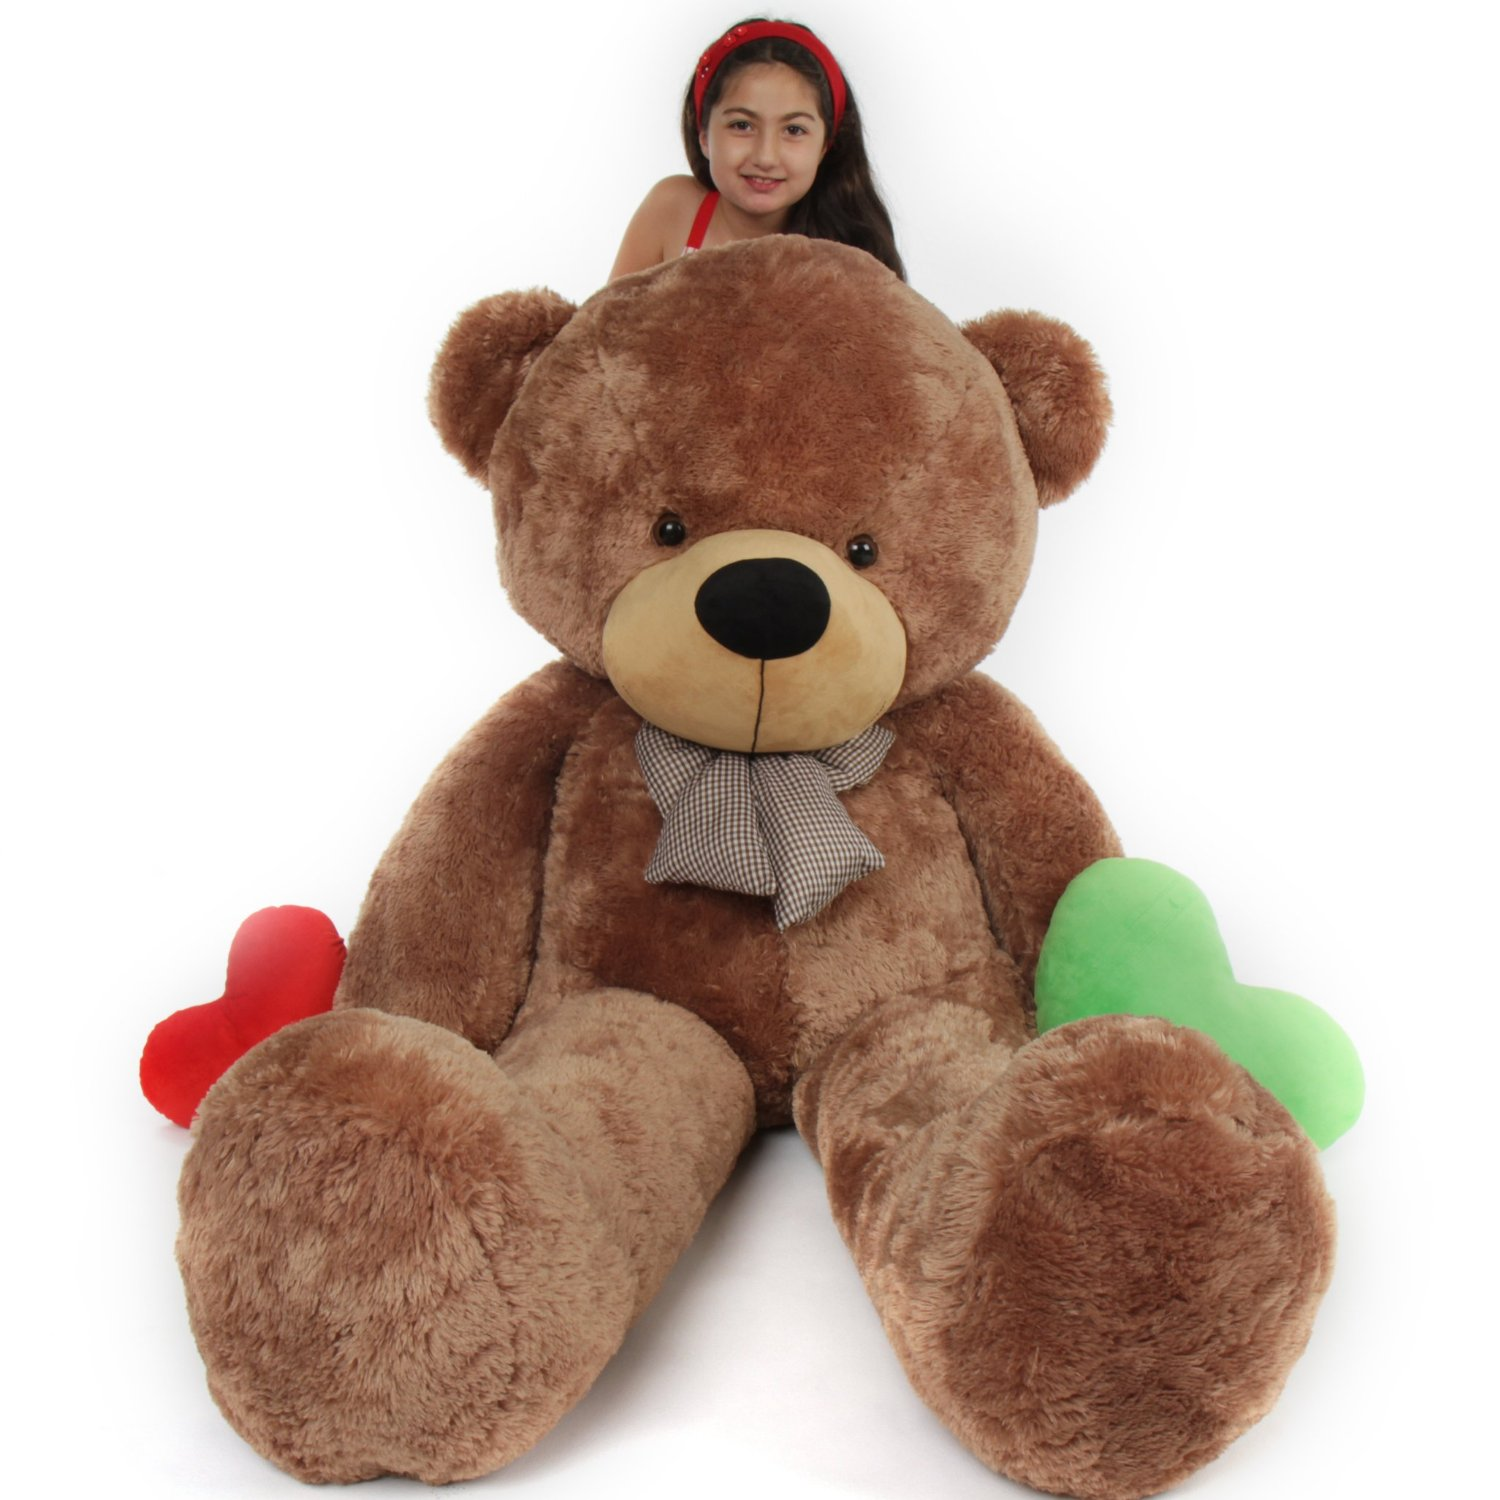 Amazon.com: 6 Foot Life Size Teddy Bear Mocha Color Huggable Plush Teddy Bear Sunny Cuddles: Toys & Games